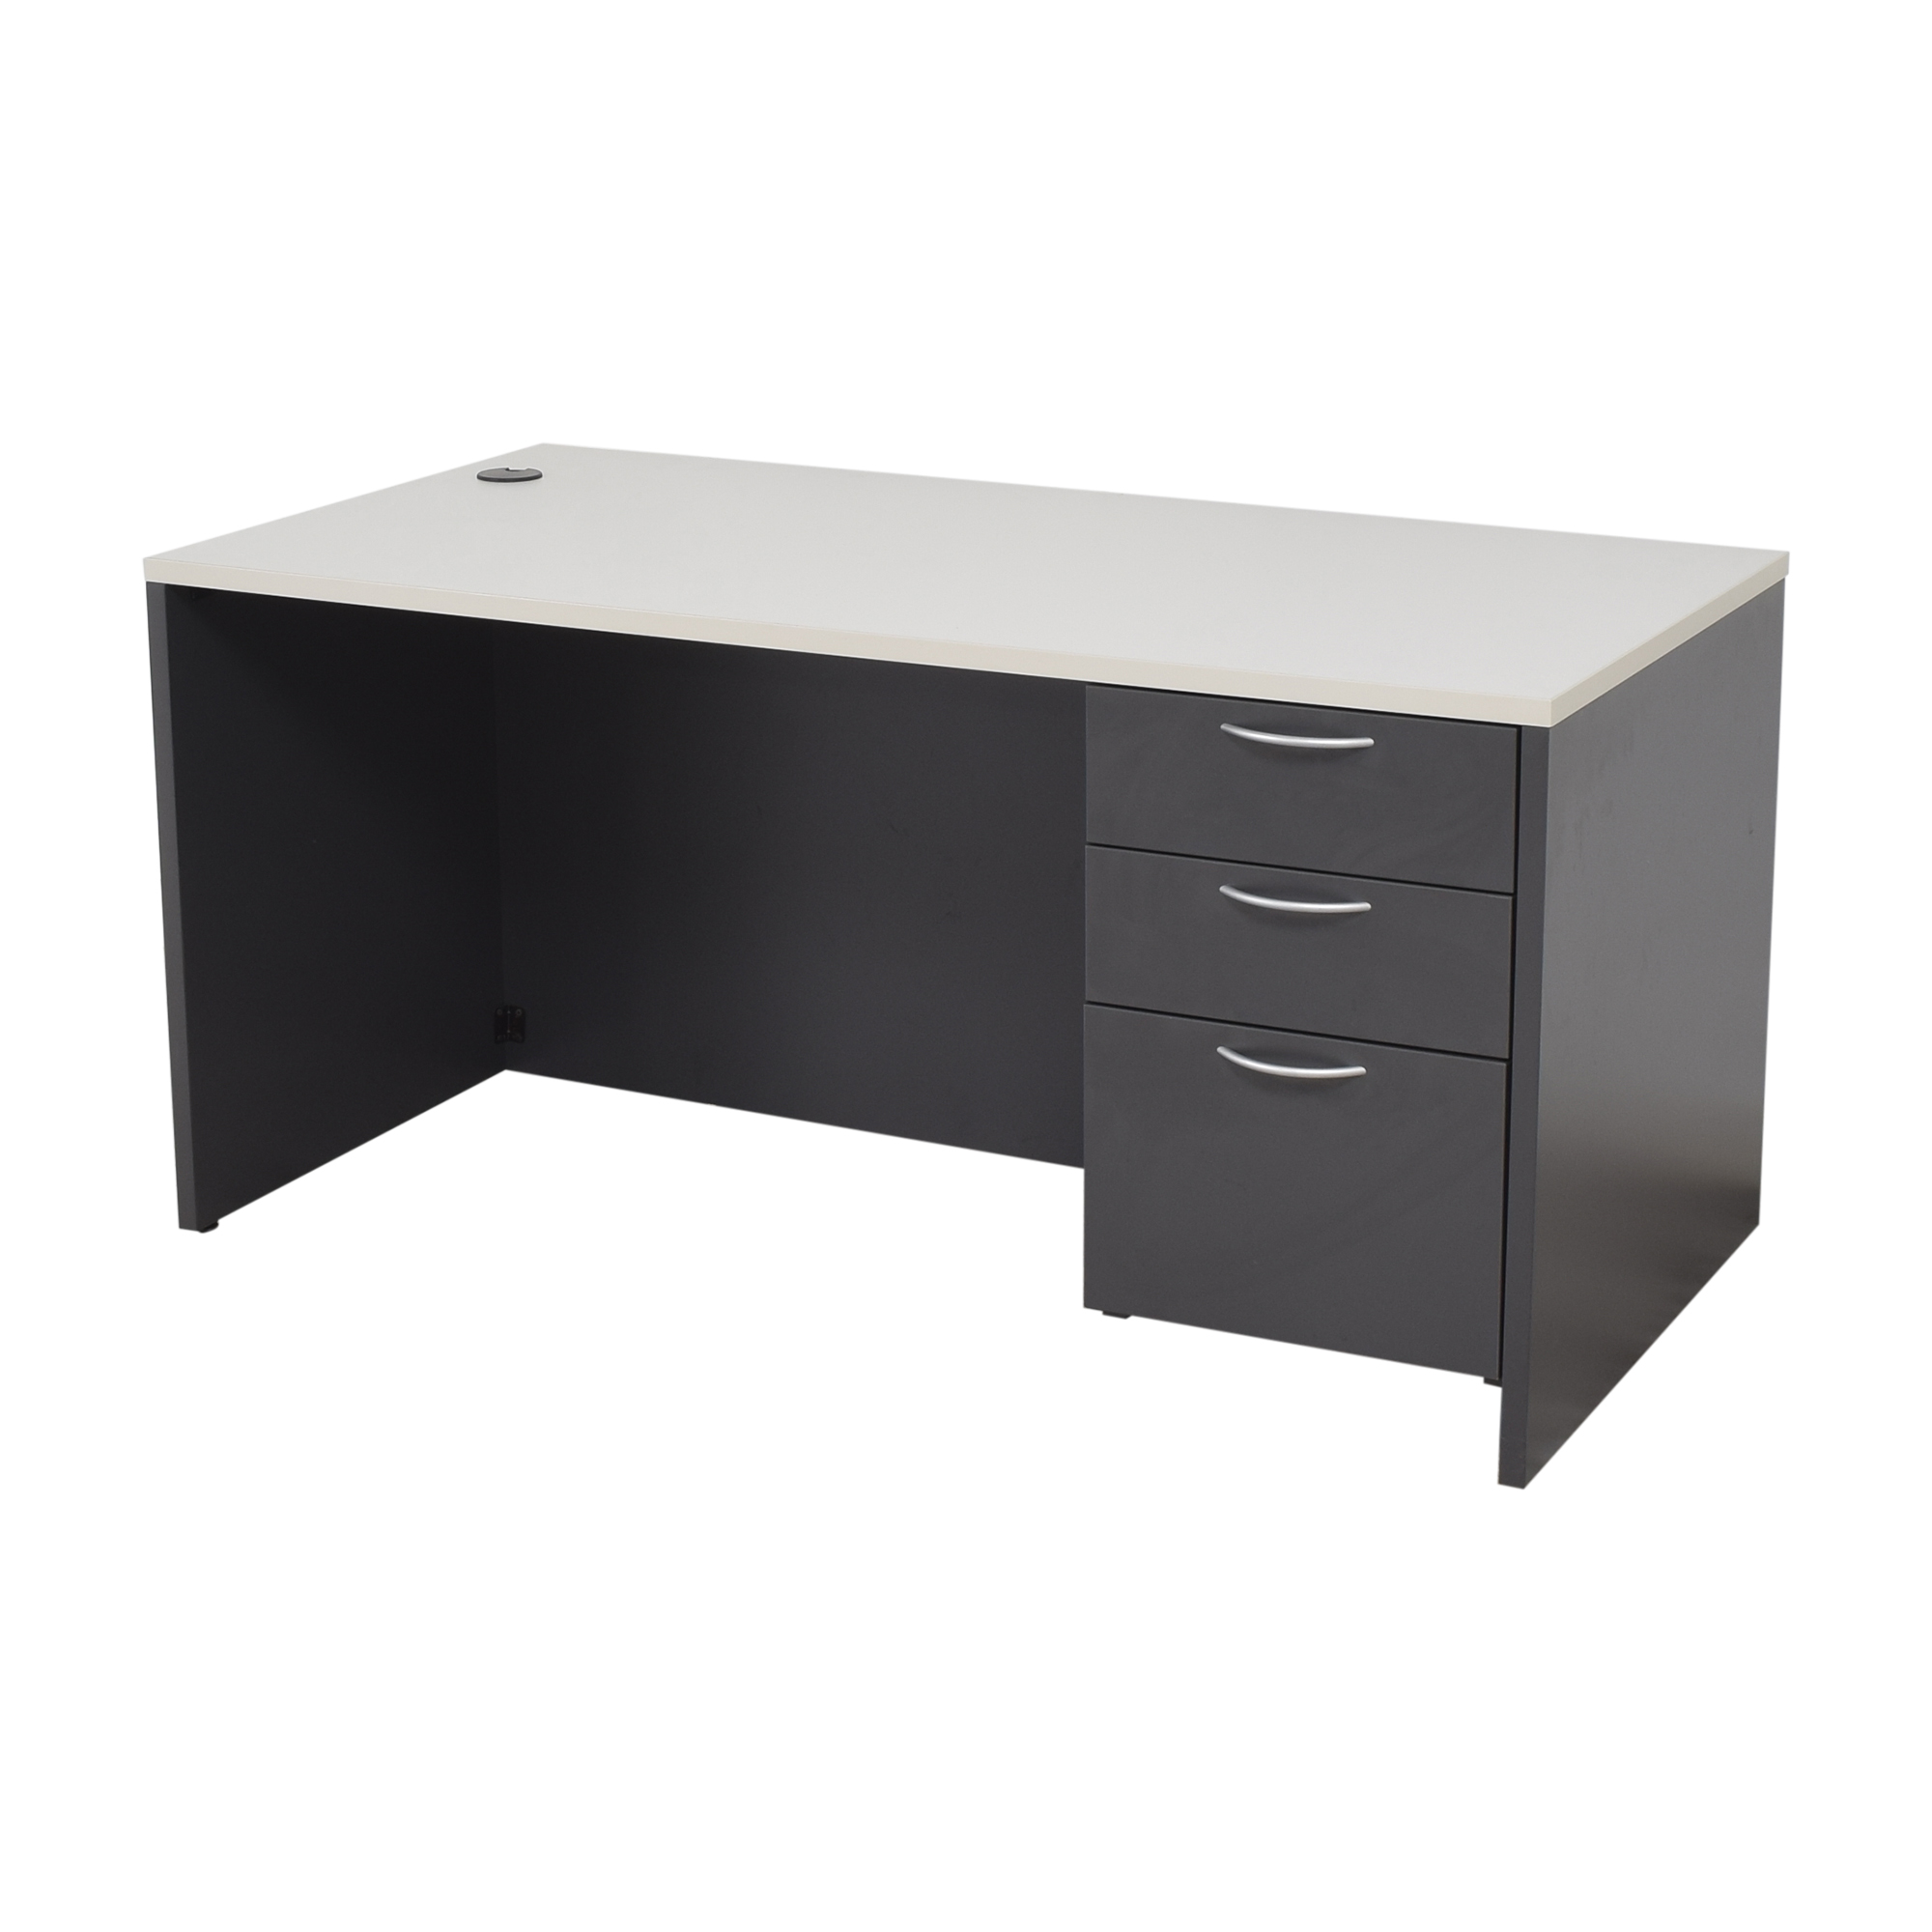 Office Furniture Heaven Office Furniture Heaven Three Drawer Desk dark and light gray